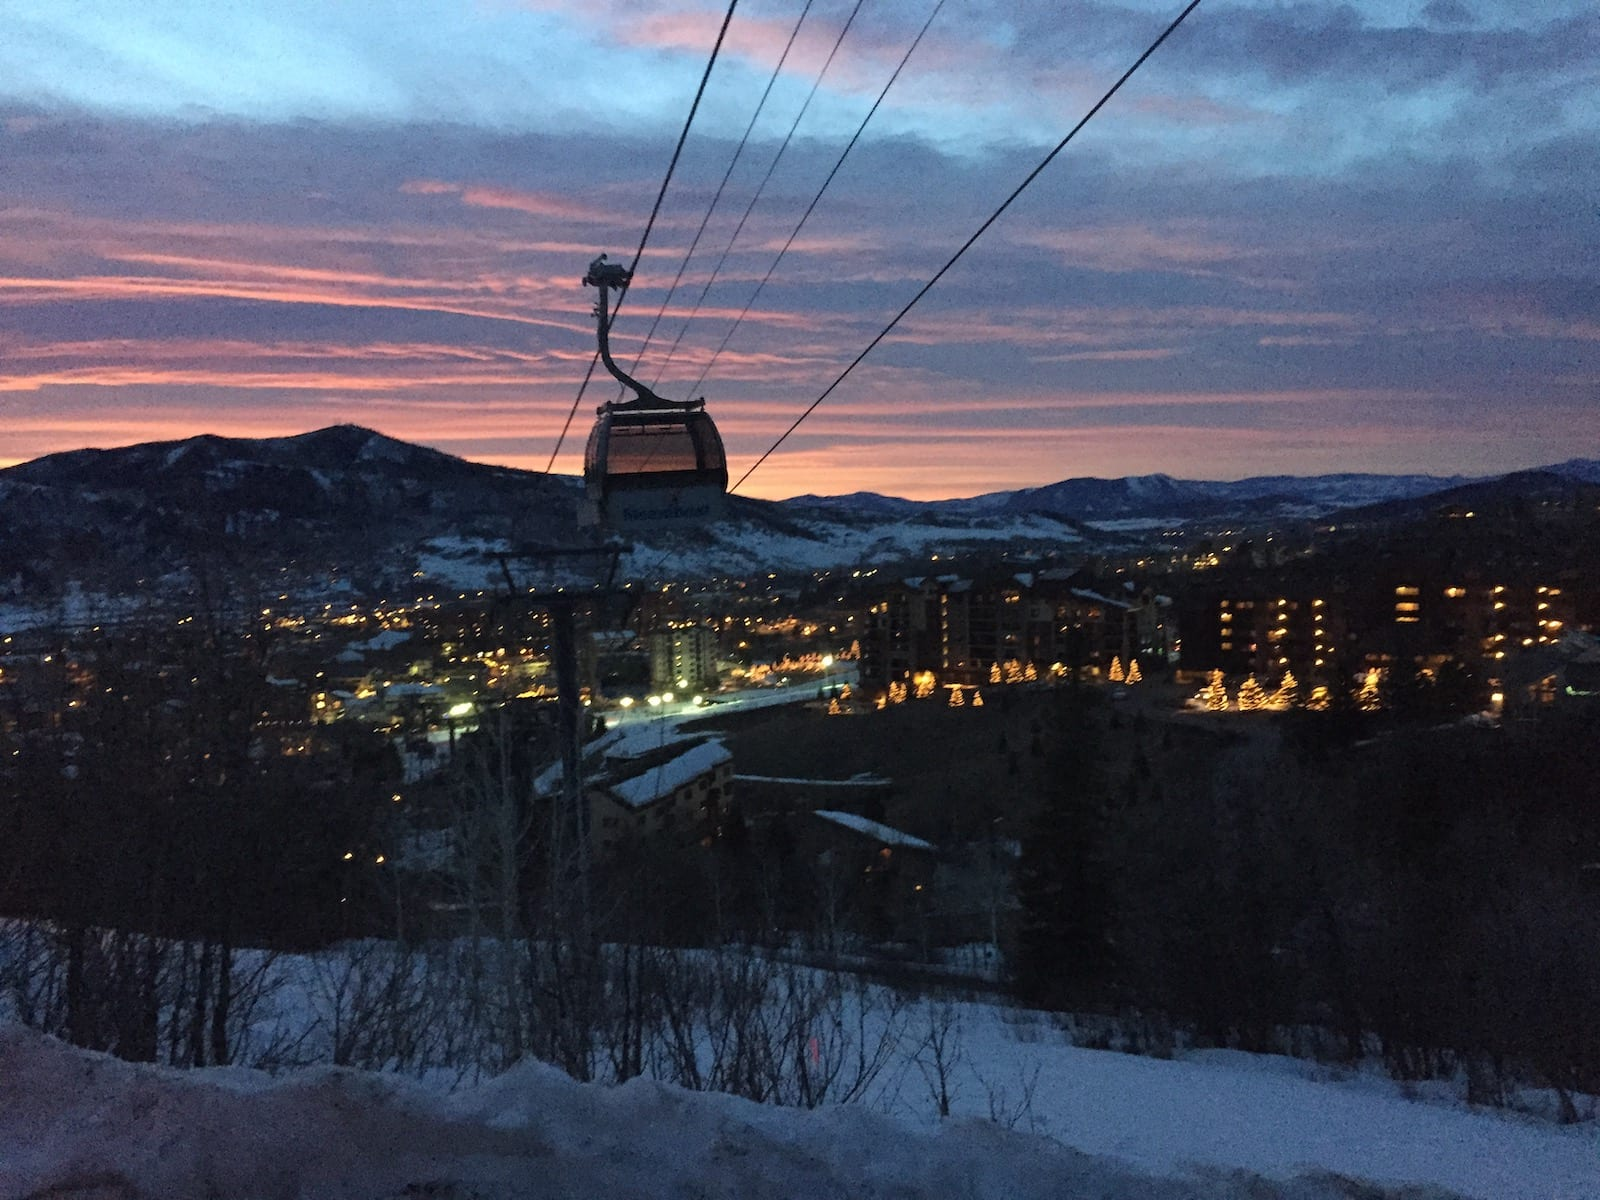 Steamboat Springs Gondola Sunset Mountain Village